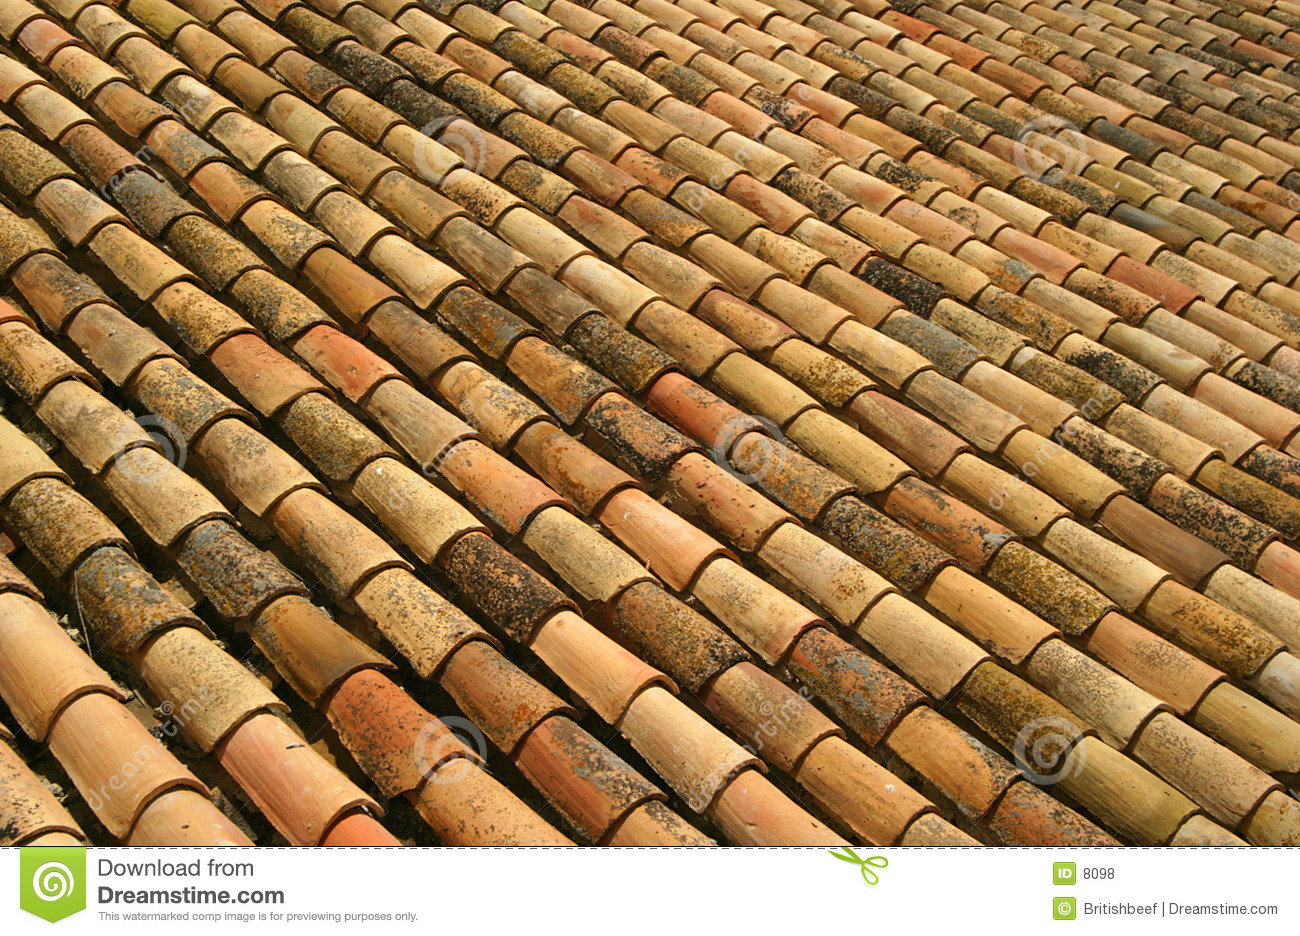 Spanish Roof Tiles Royalty Free Stock Photos Image 8098